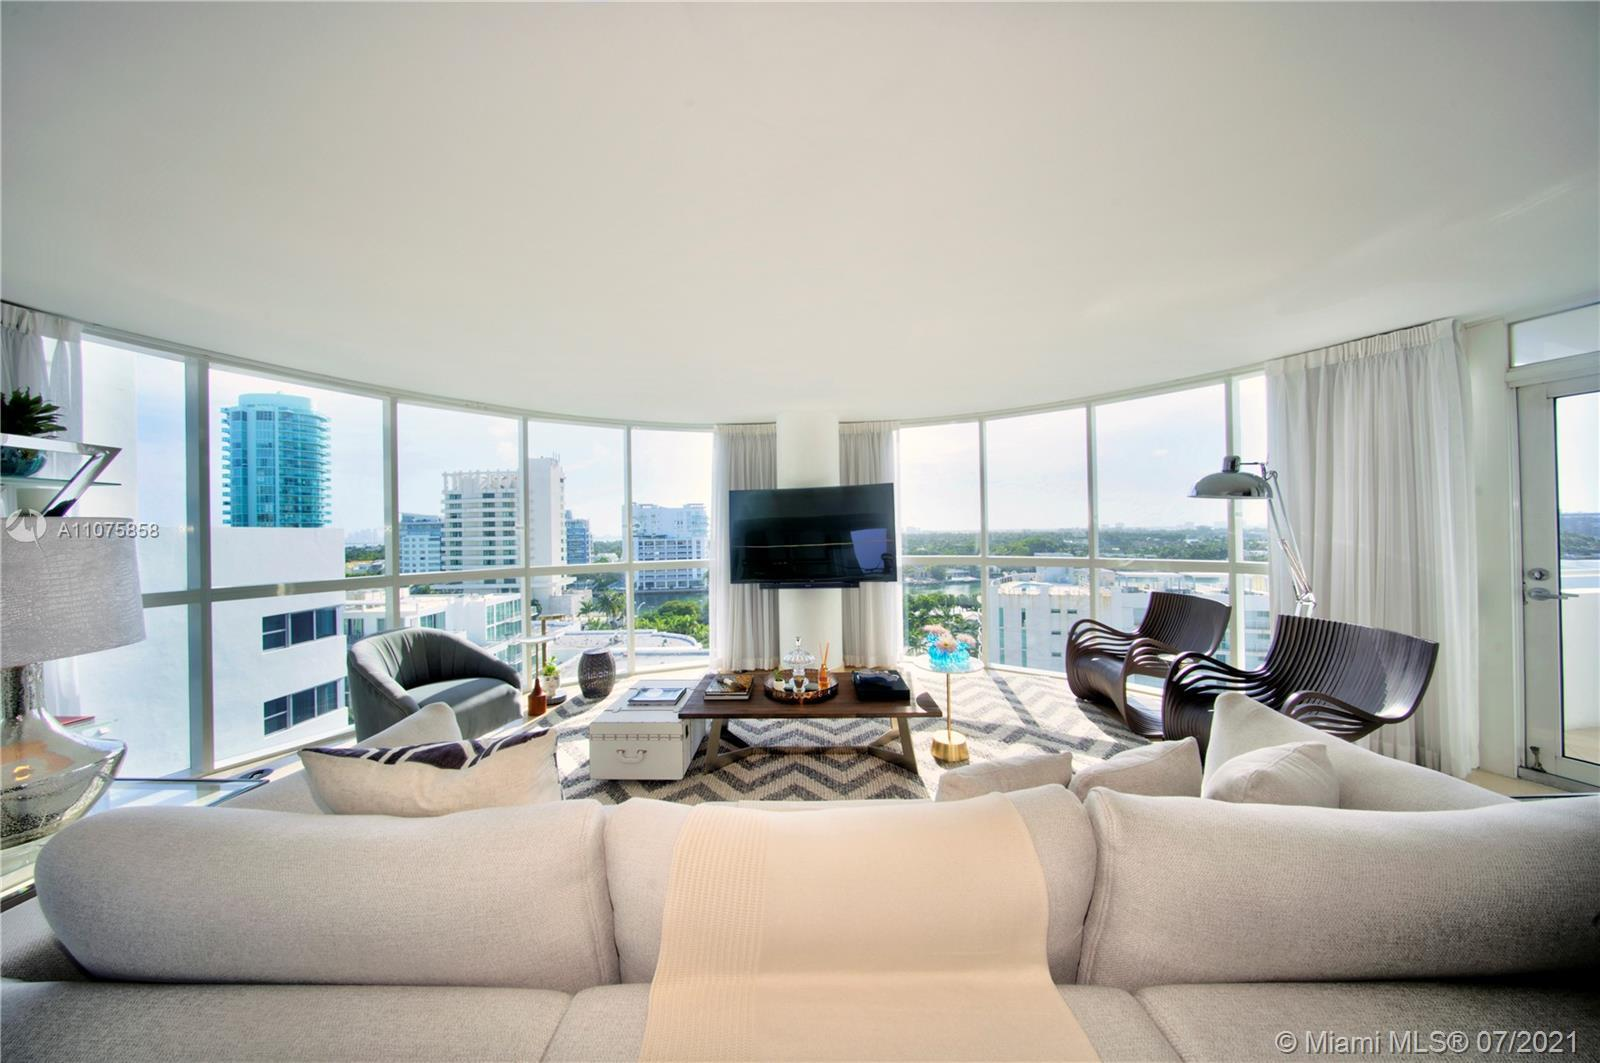 Spectacular 180-degree views of the ocean, bay and Miami skyline from floor to ceiling windows.  Th